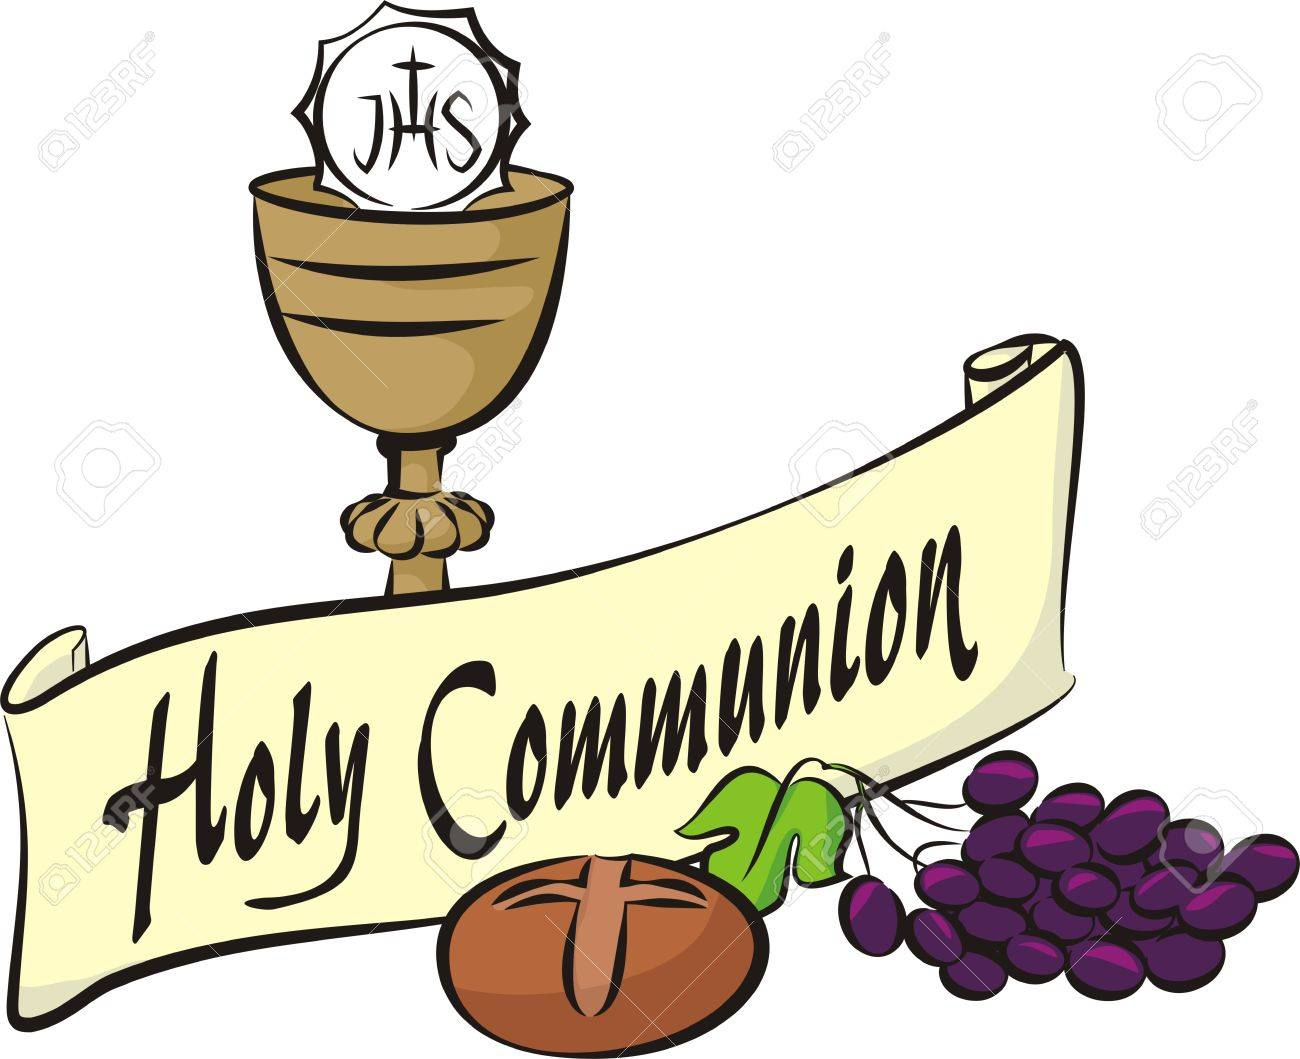 holy communion royalty free cliparts vectors and stock rh 123rf com first holy communion clip art holy communion pictures clip art